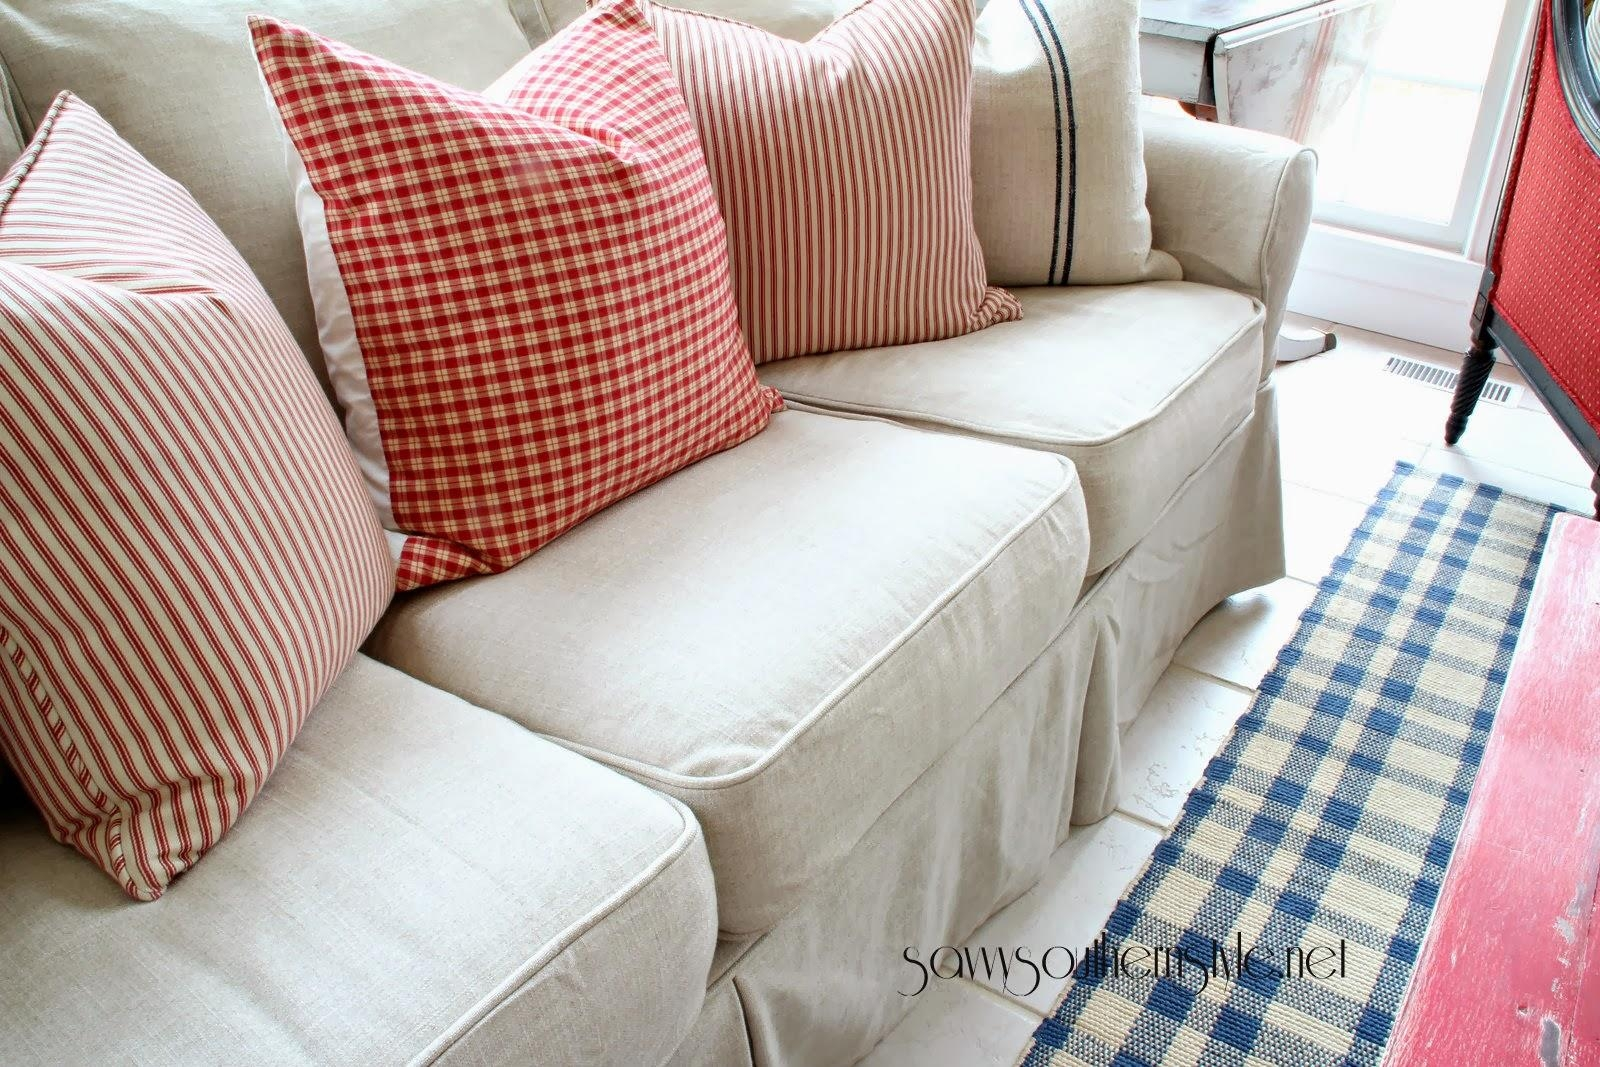 Custom Slipcovers And Couch Cover For Any Sofa Online With Individual Couch Seat Cushion Covers (View 15 of 20)